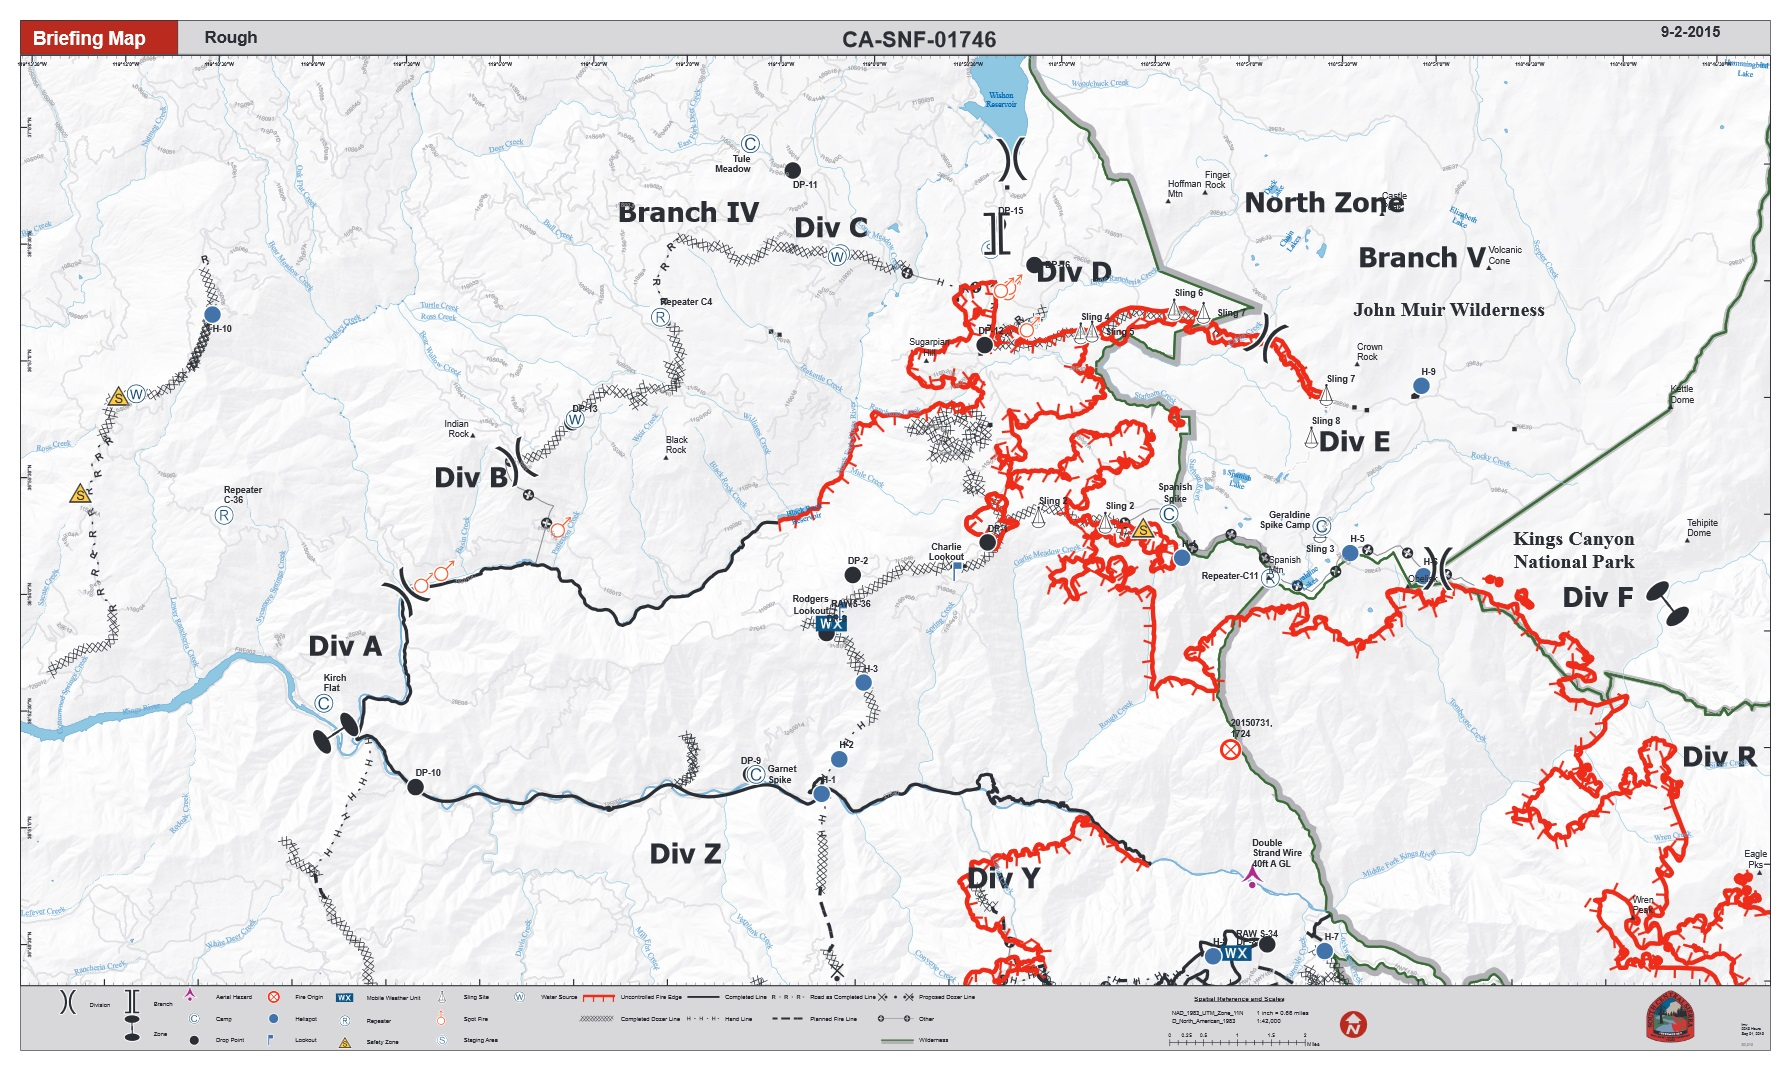 Rough Fire briefing map northern half 9-2-15